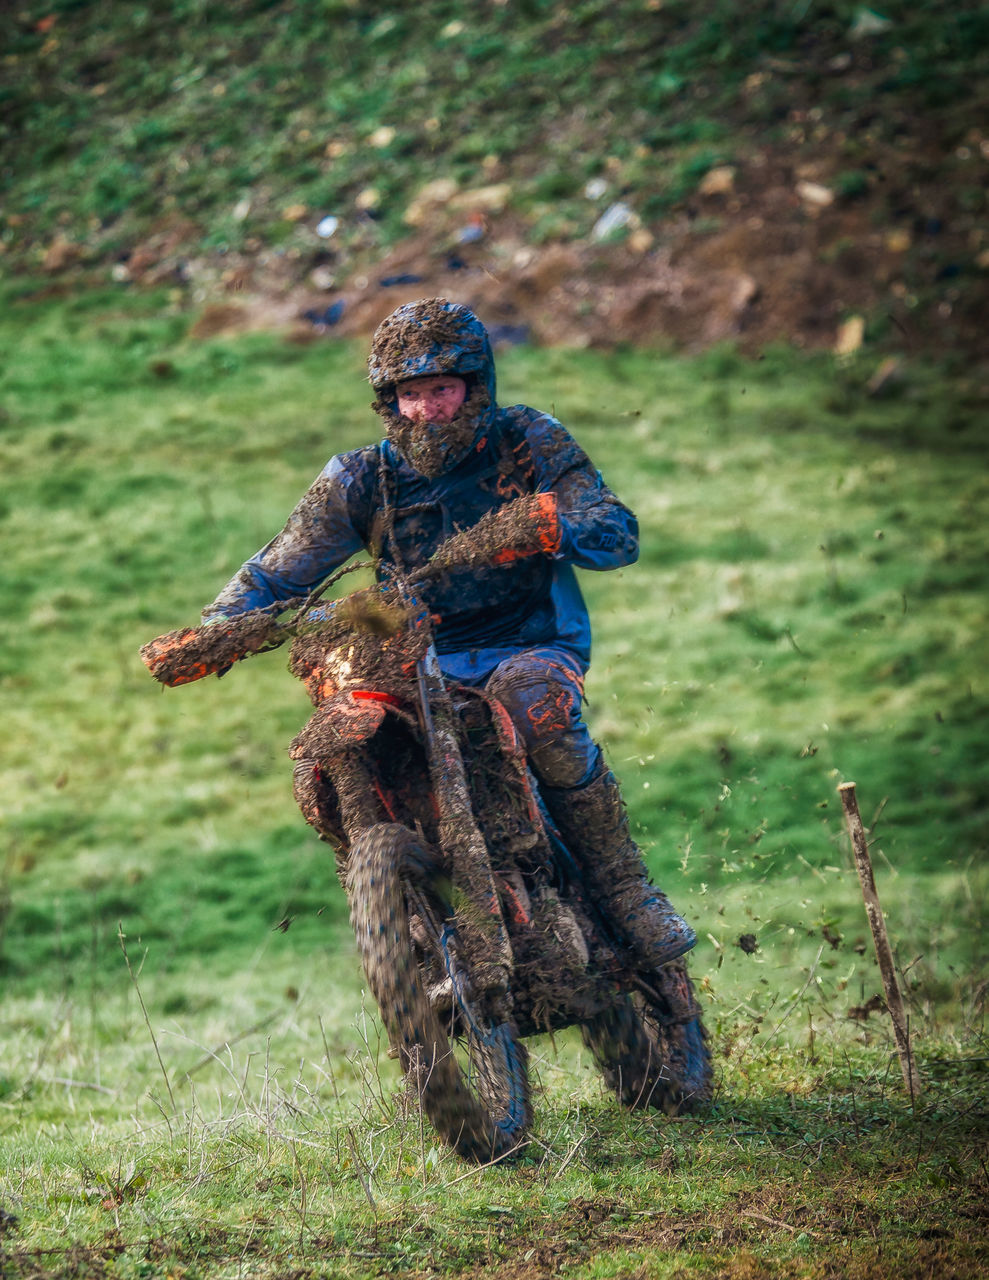 real people, field, one person, day, outdoors, full length, lifestyles, men, grass, weapon, army soldier, nature, one man only, camouflage clothing, motocross, young adult, people